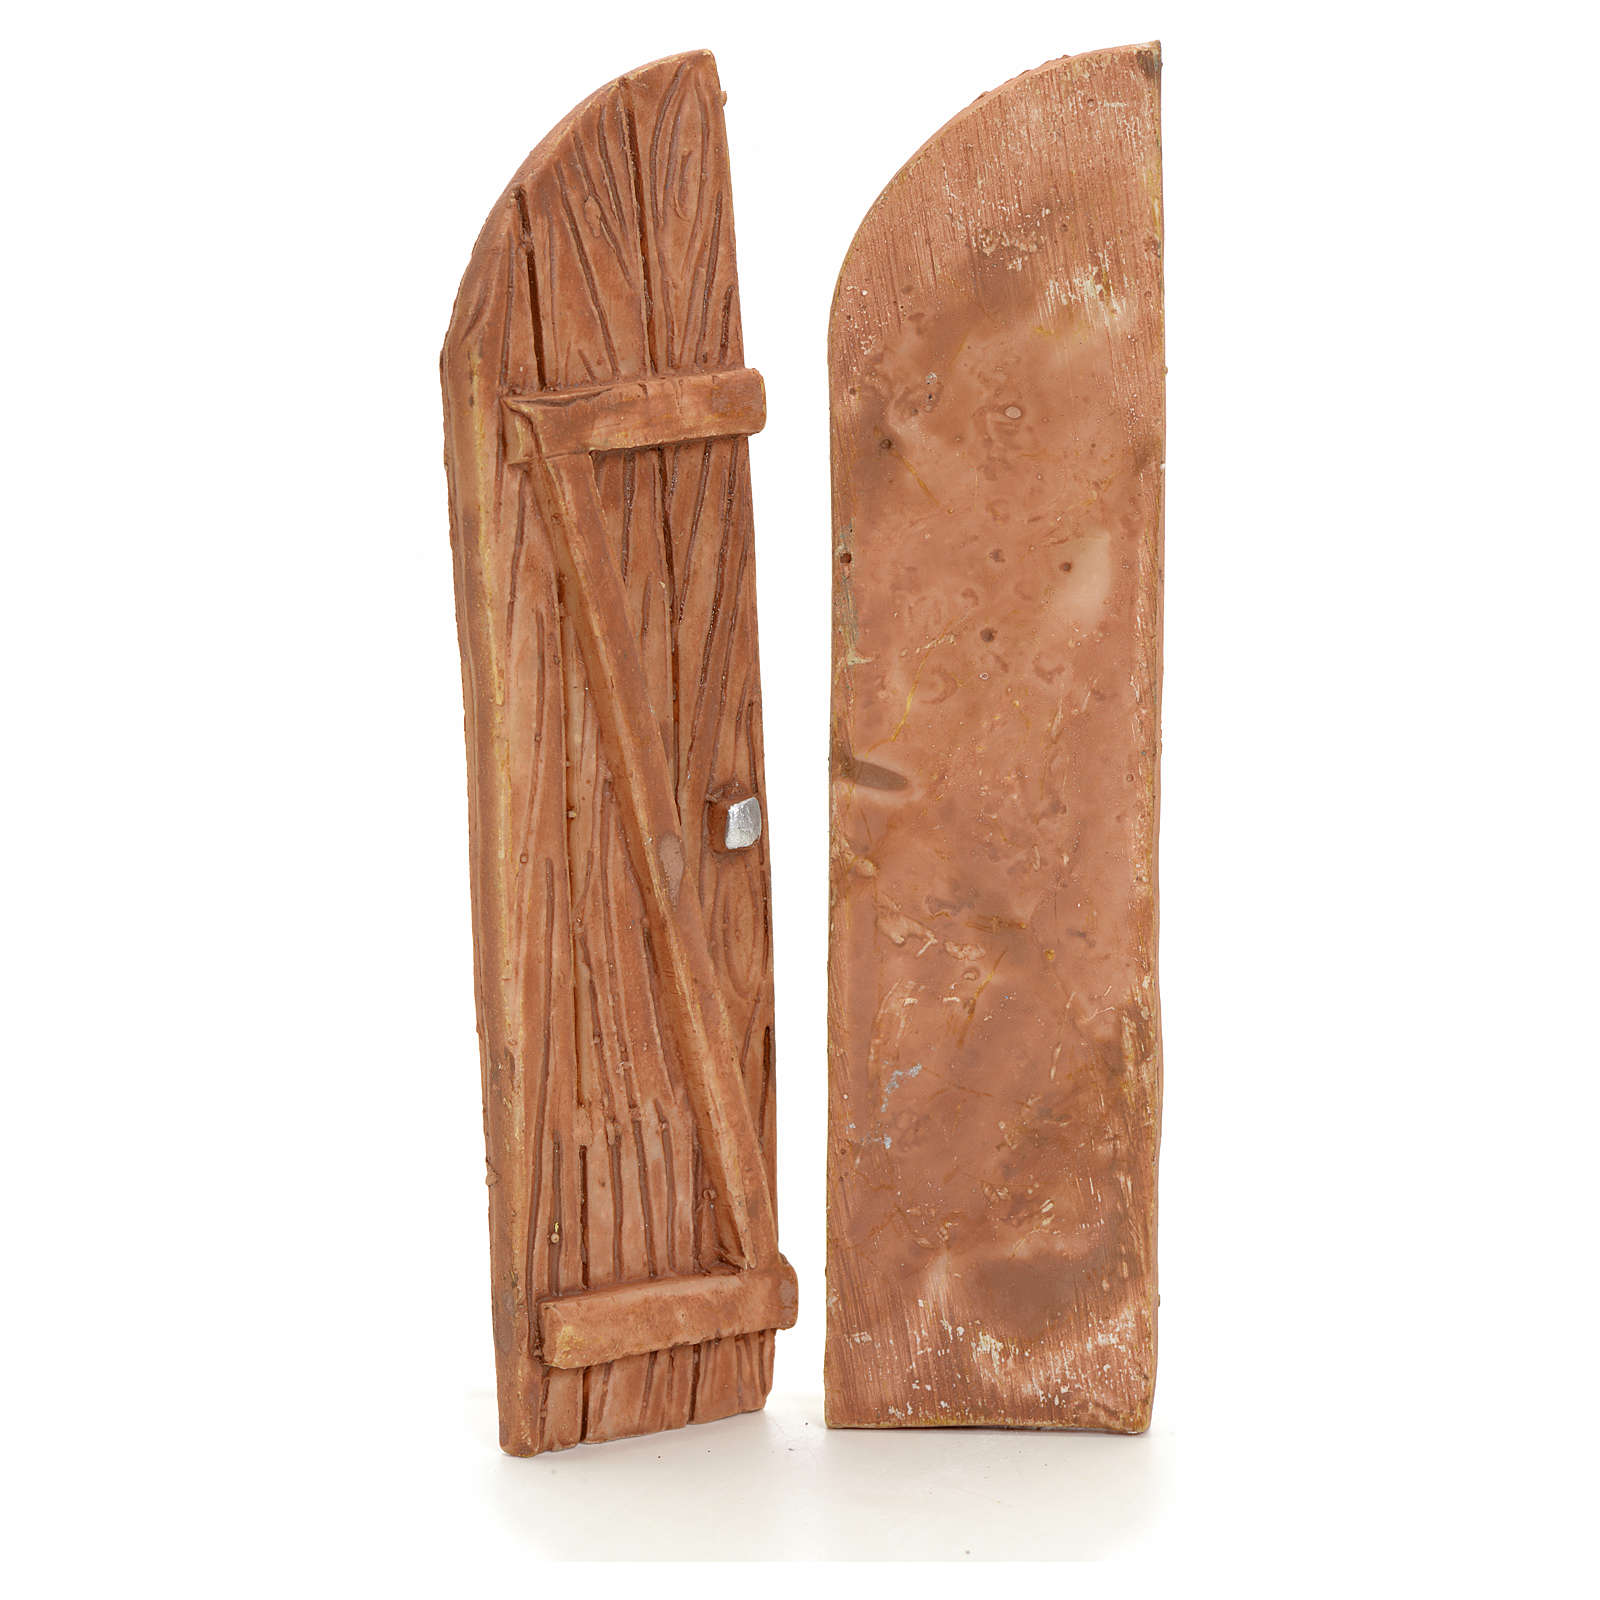 Nativity accessory, resin arched double door 4